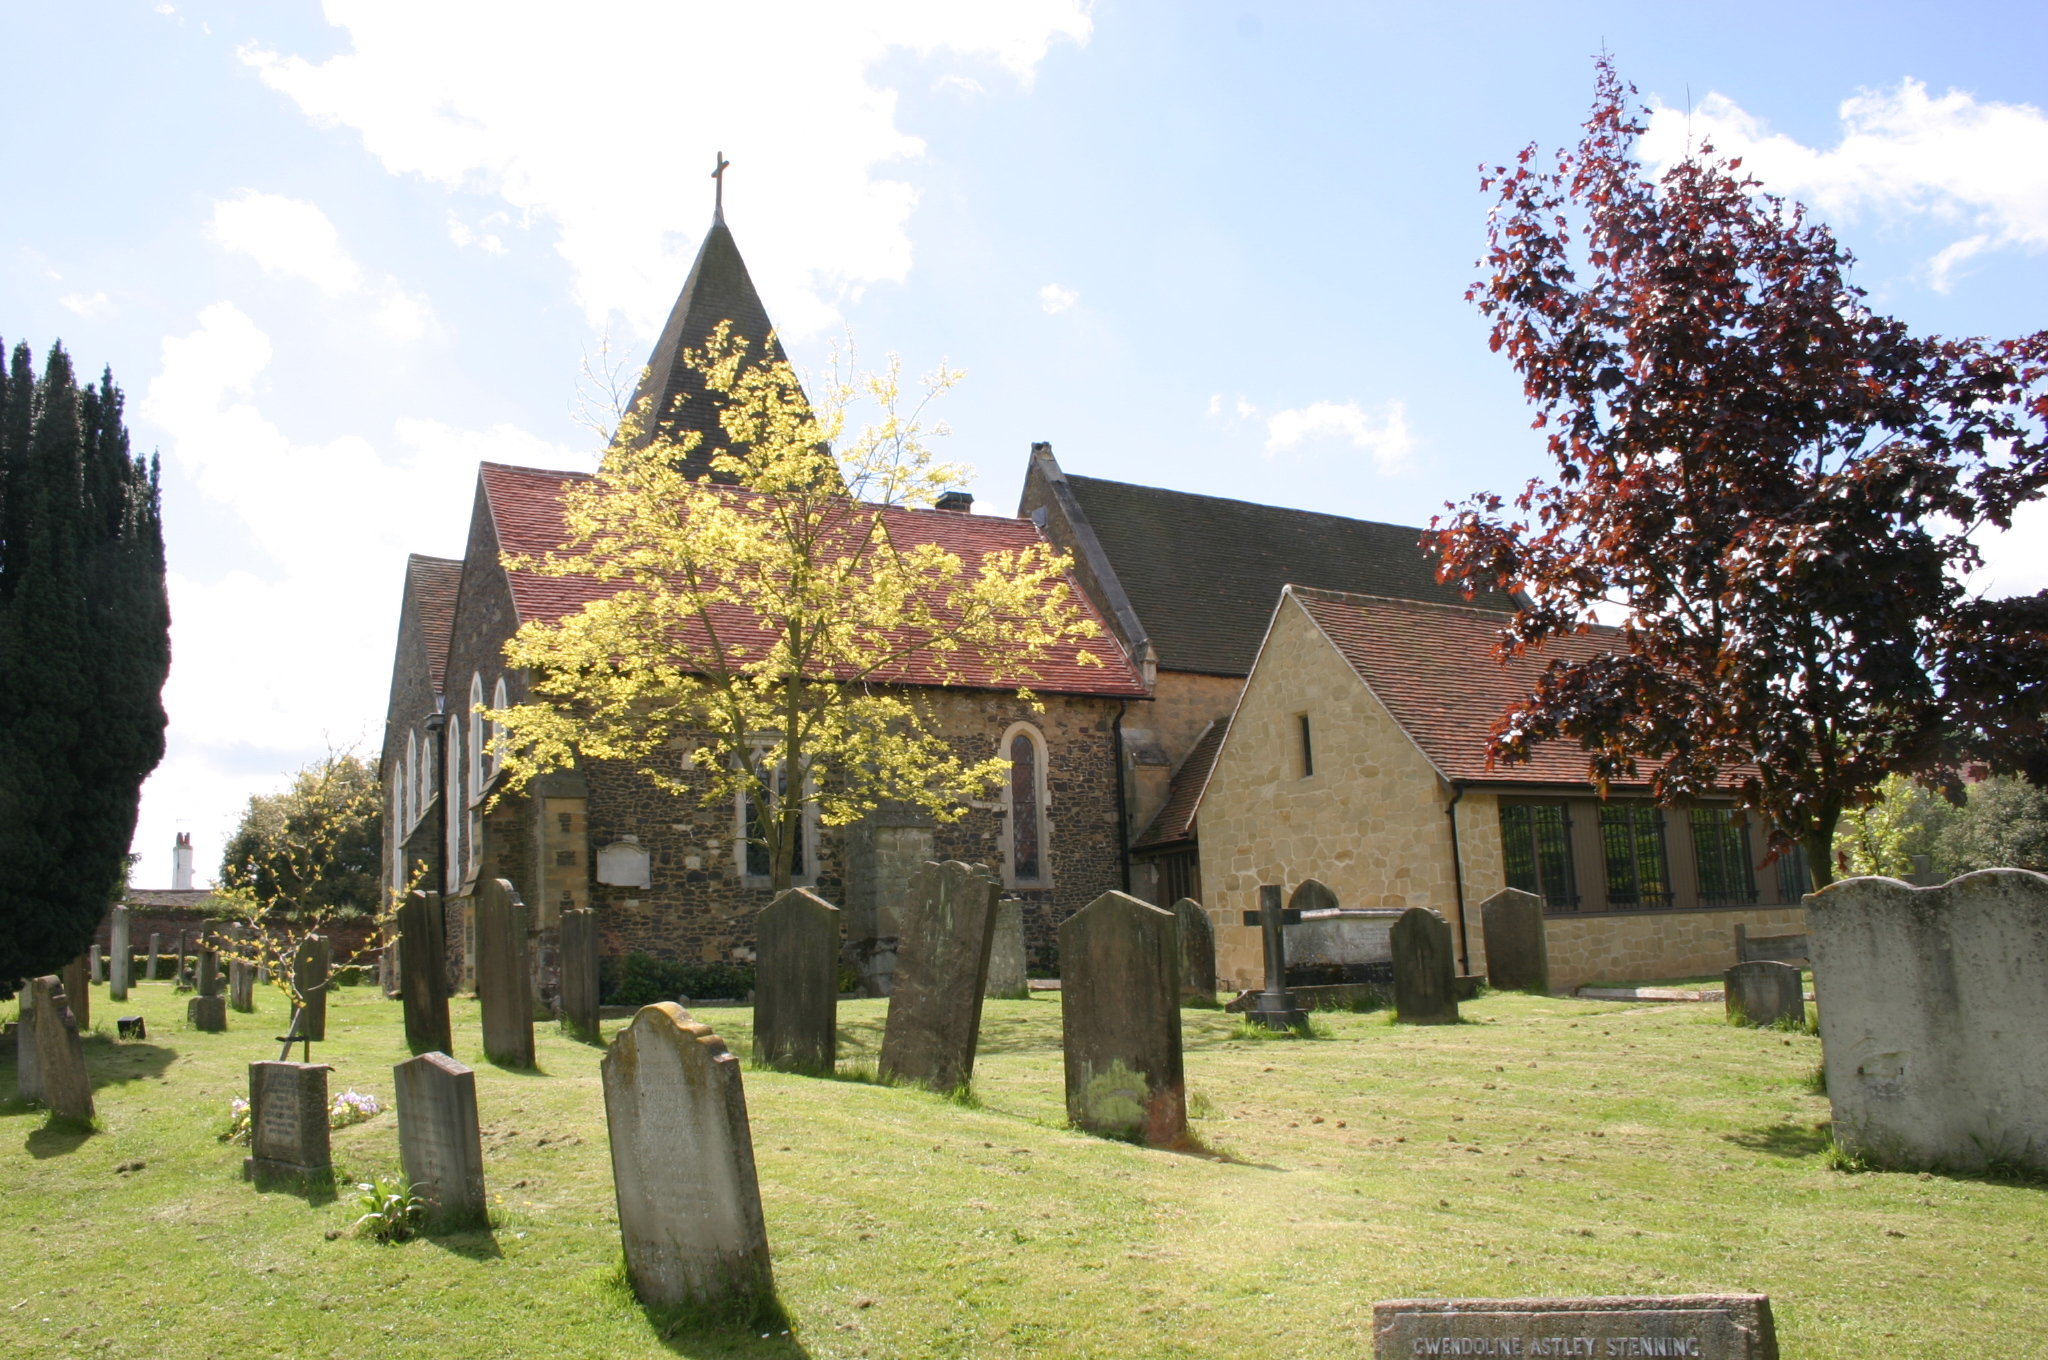 Our Churchyard - St Peter's Limpsfield